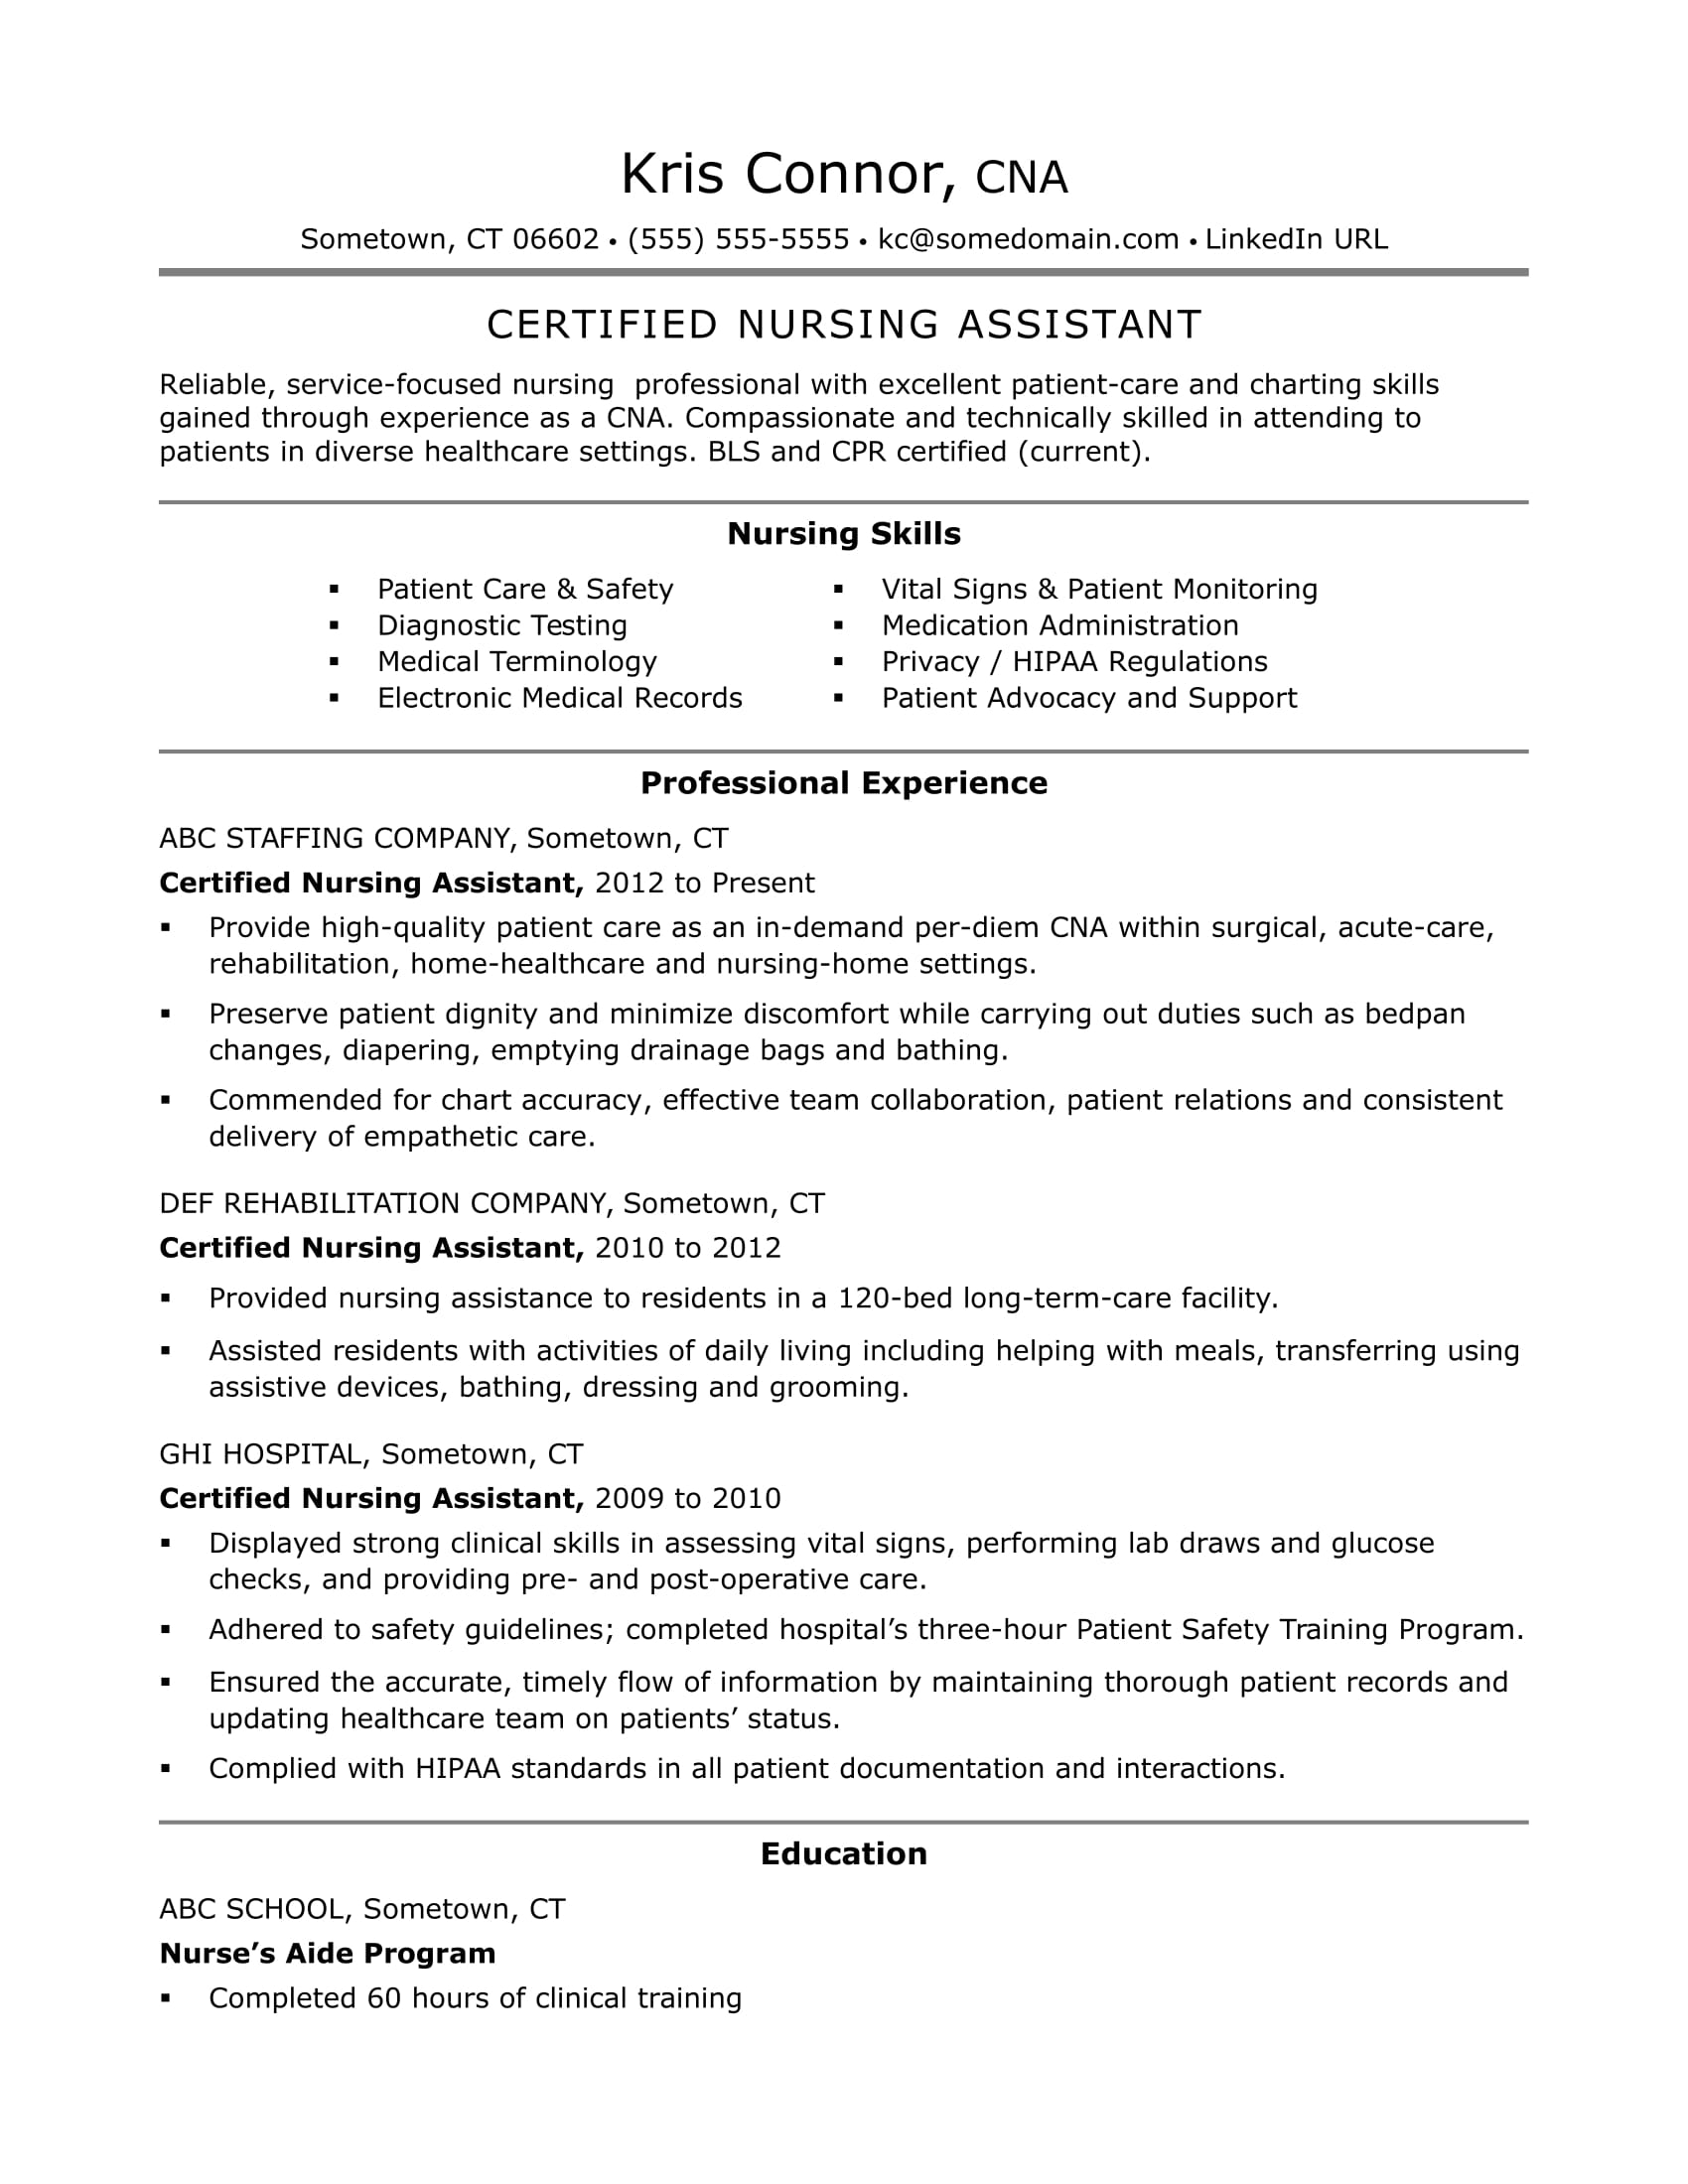 cna resume examples skills for cnas monster sample nursing aide without experience Resume Sample Resume For Nursing Aide Without Experience